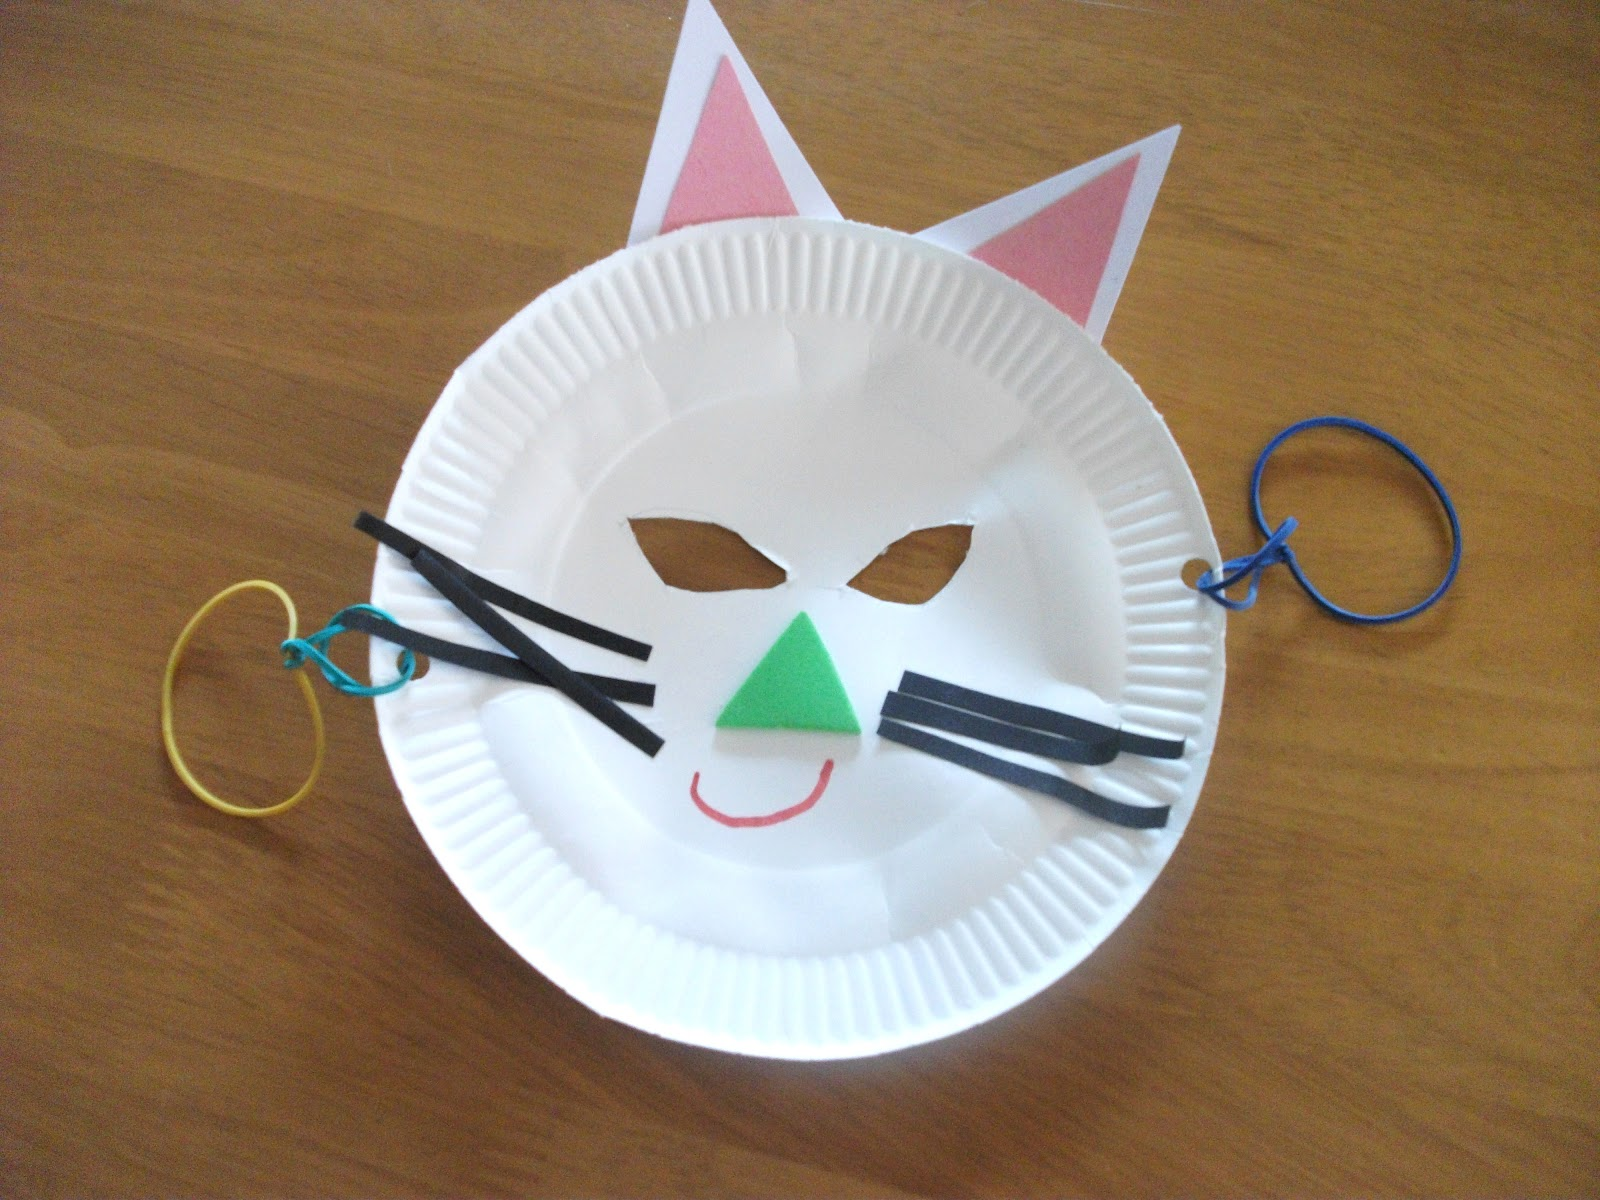 Preschool Crafts for Kids*: Paper Plate Cat Mask Craft